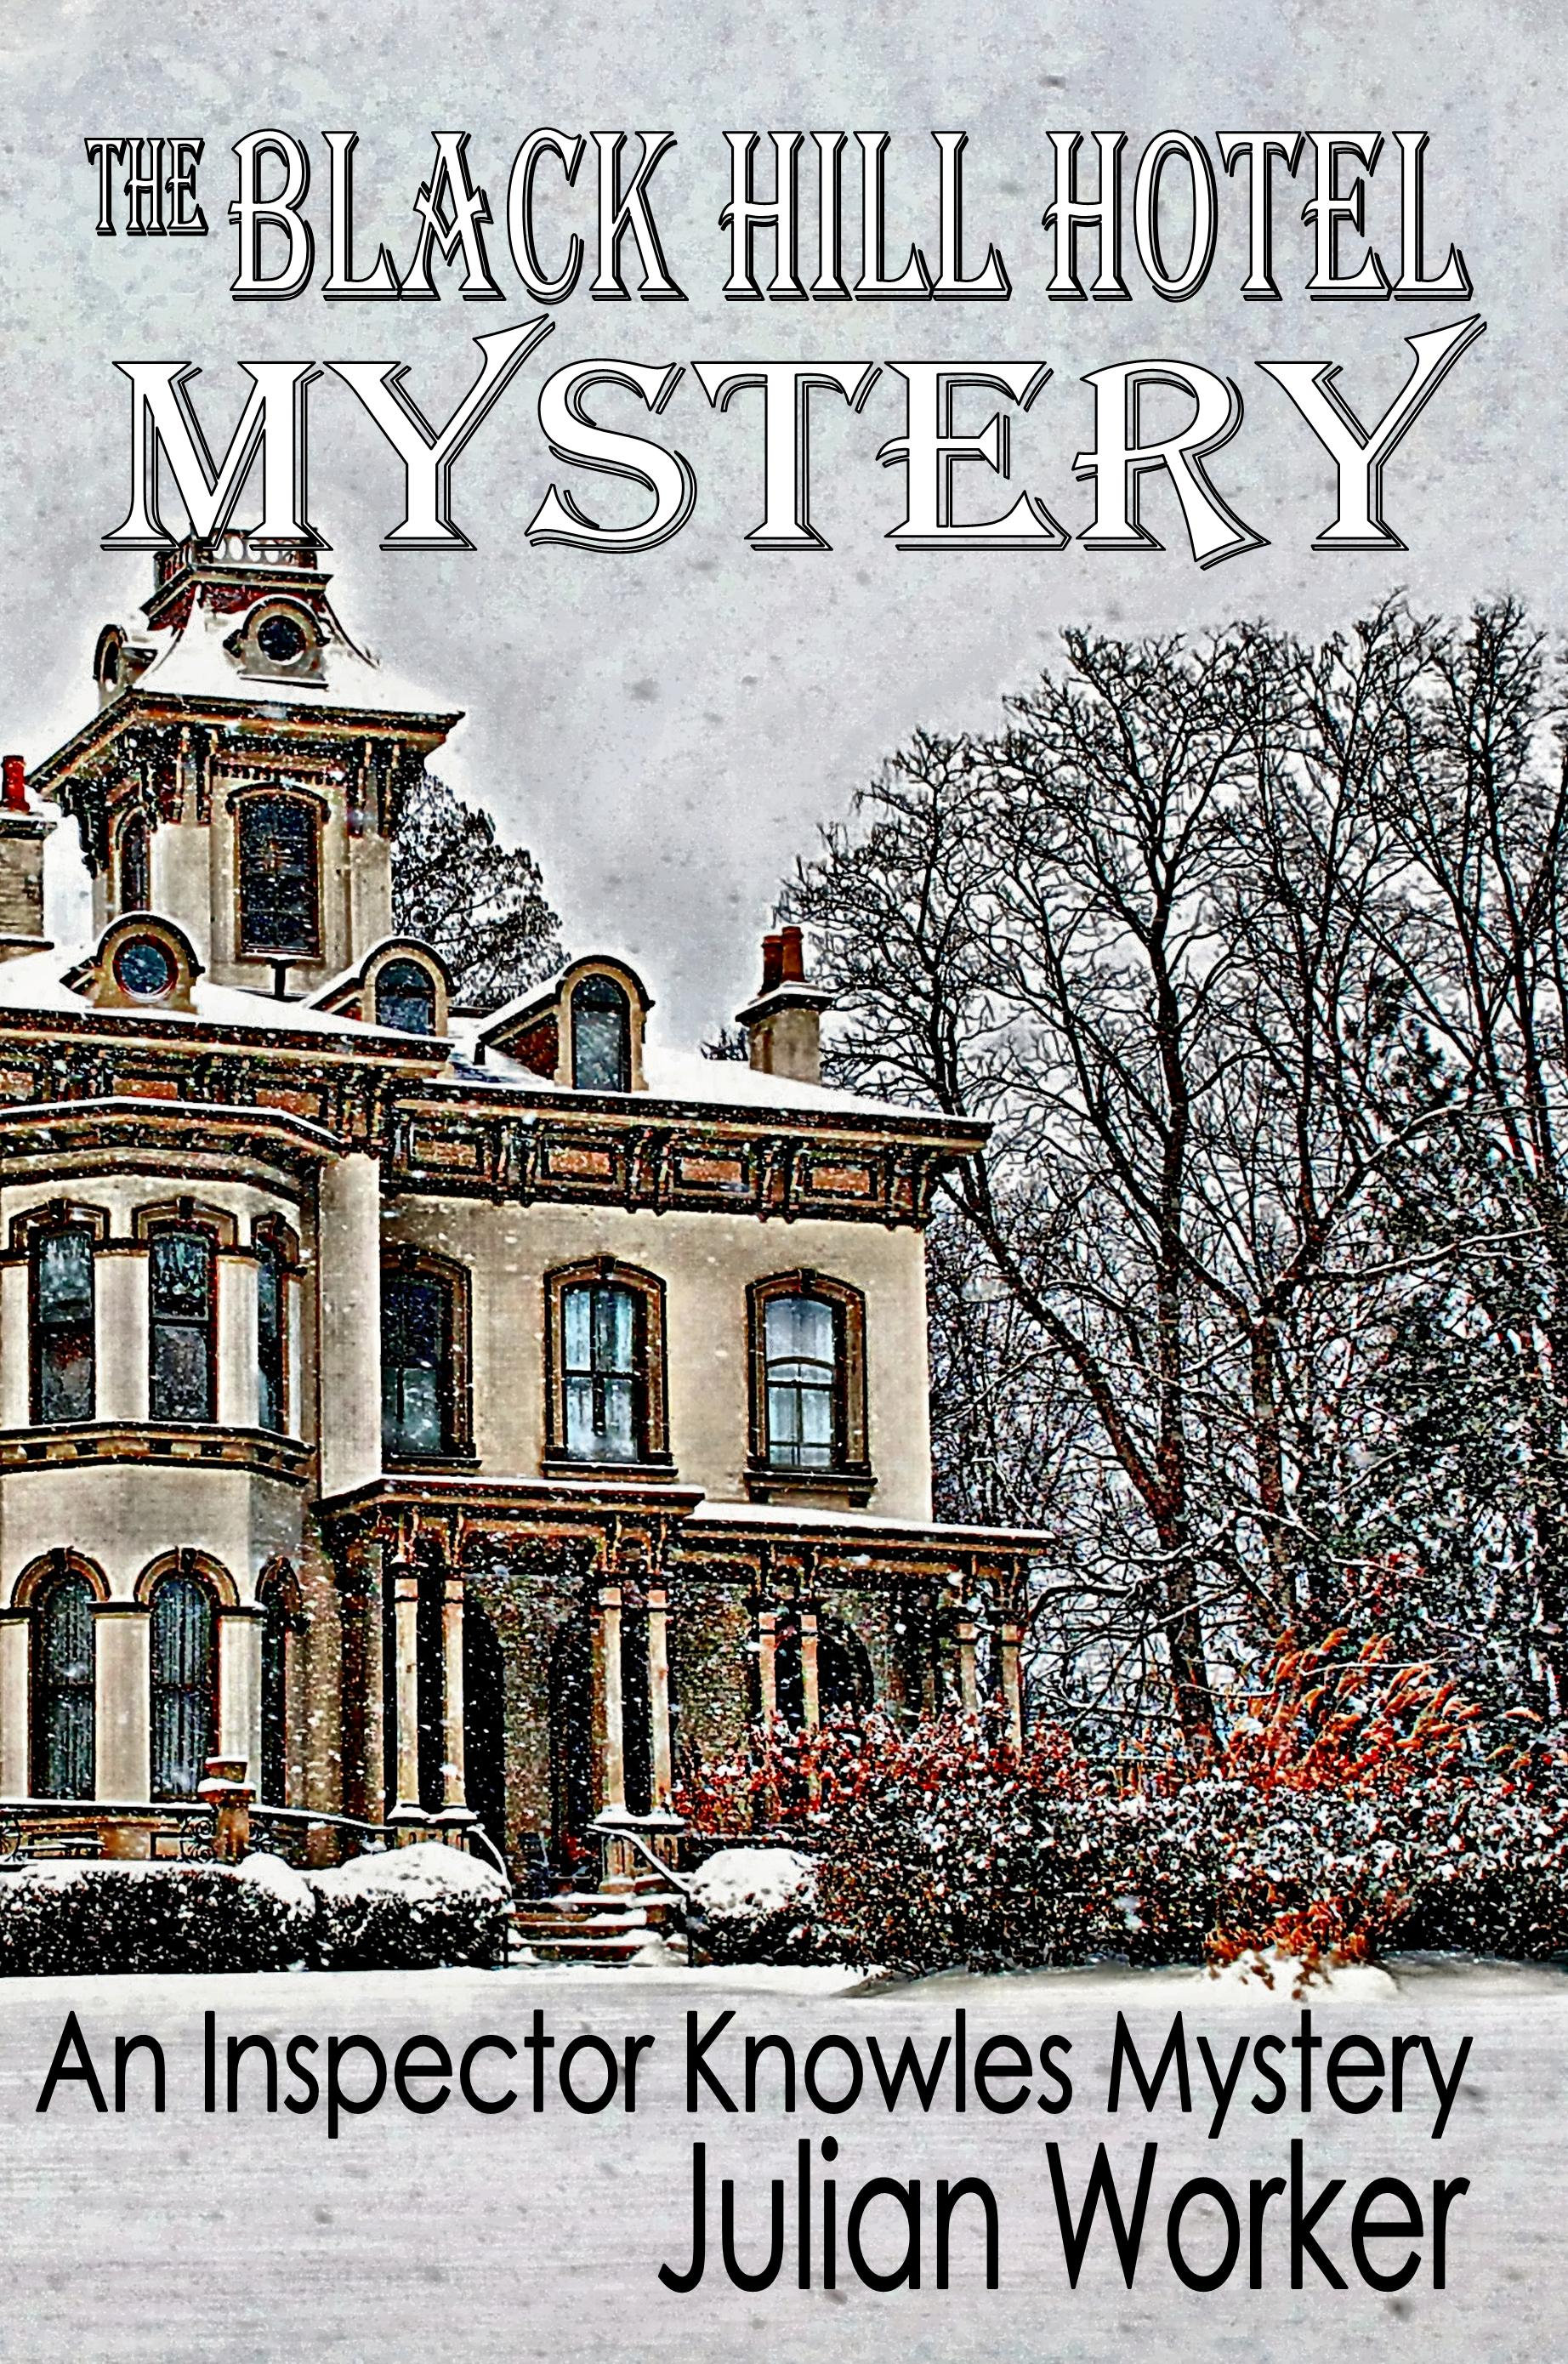 The Black Hill Hotel Mystery – 12